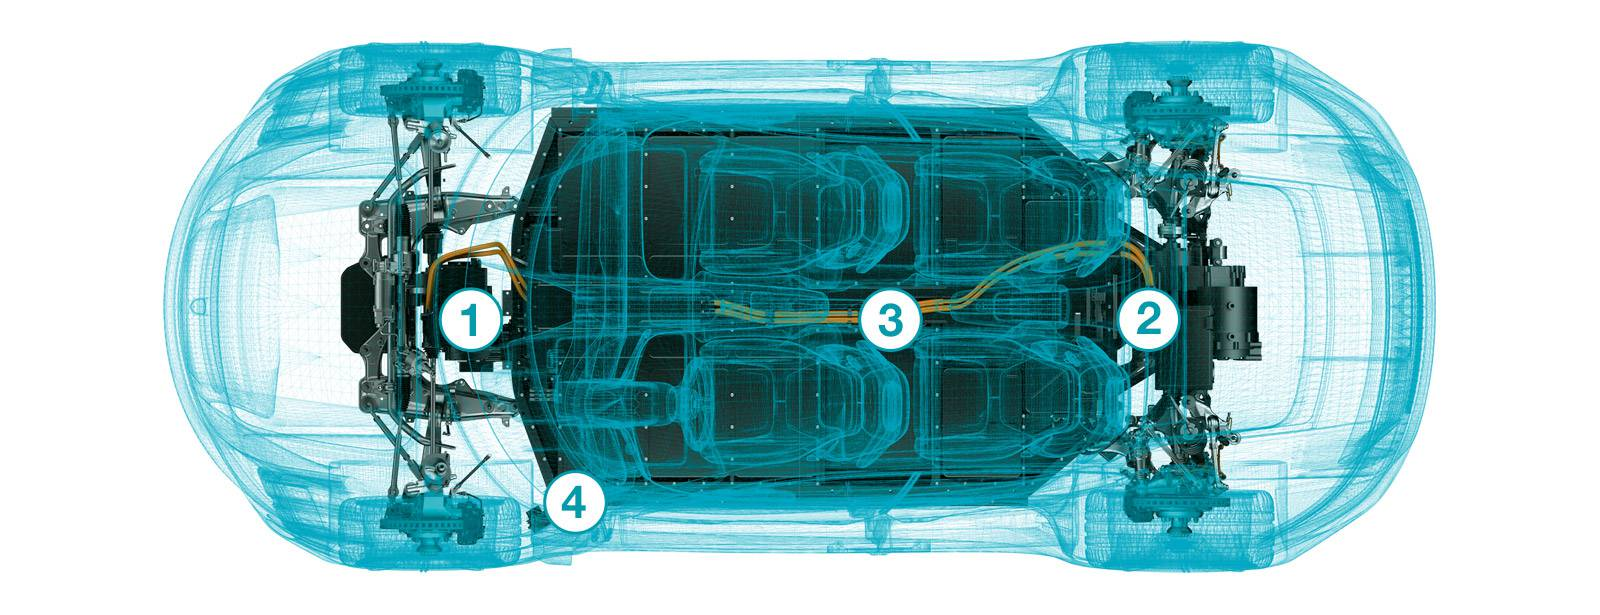 Hyper Rapid Battery Charging Could Make Electric Vehicles Mainstream Charger Circuits Simple And Easy Multifunctional Circuit 3 Is Integrated Into The Vehicle Underbody Which Improves Weight Distribution Enables Inductive Port Located In